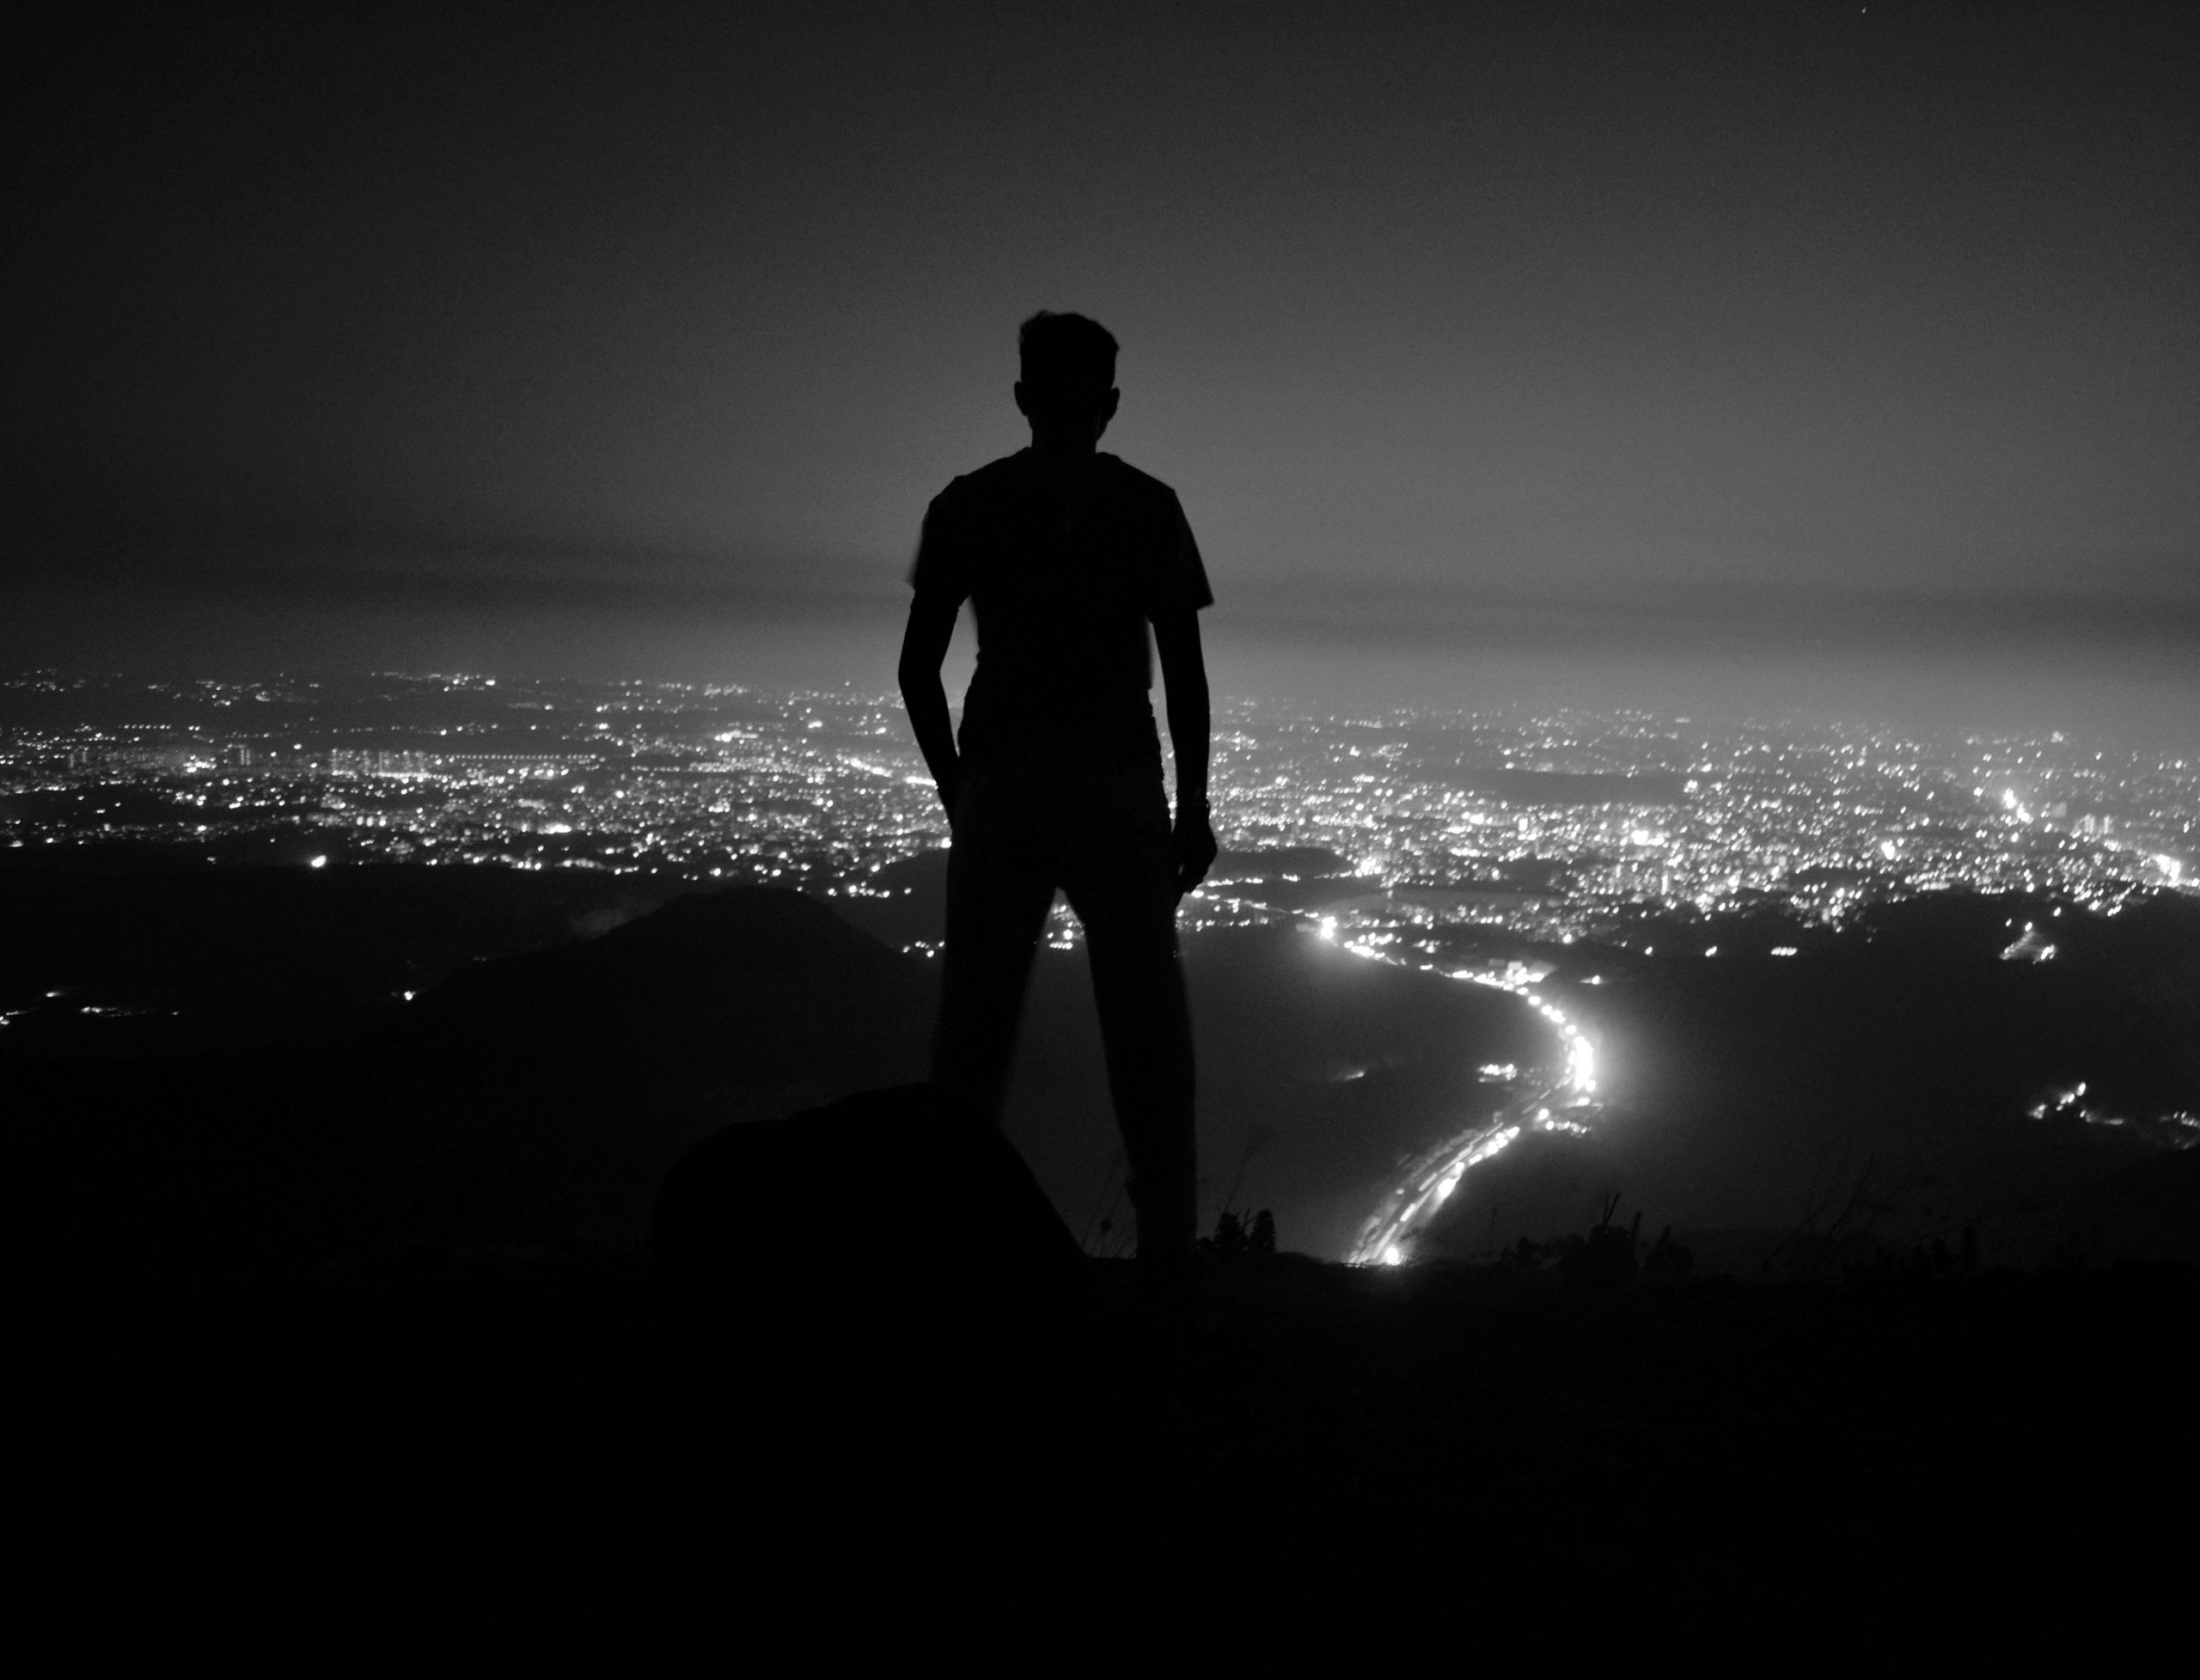 A boy enjoying night view of a city